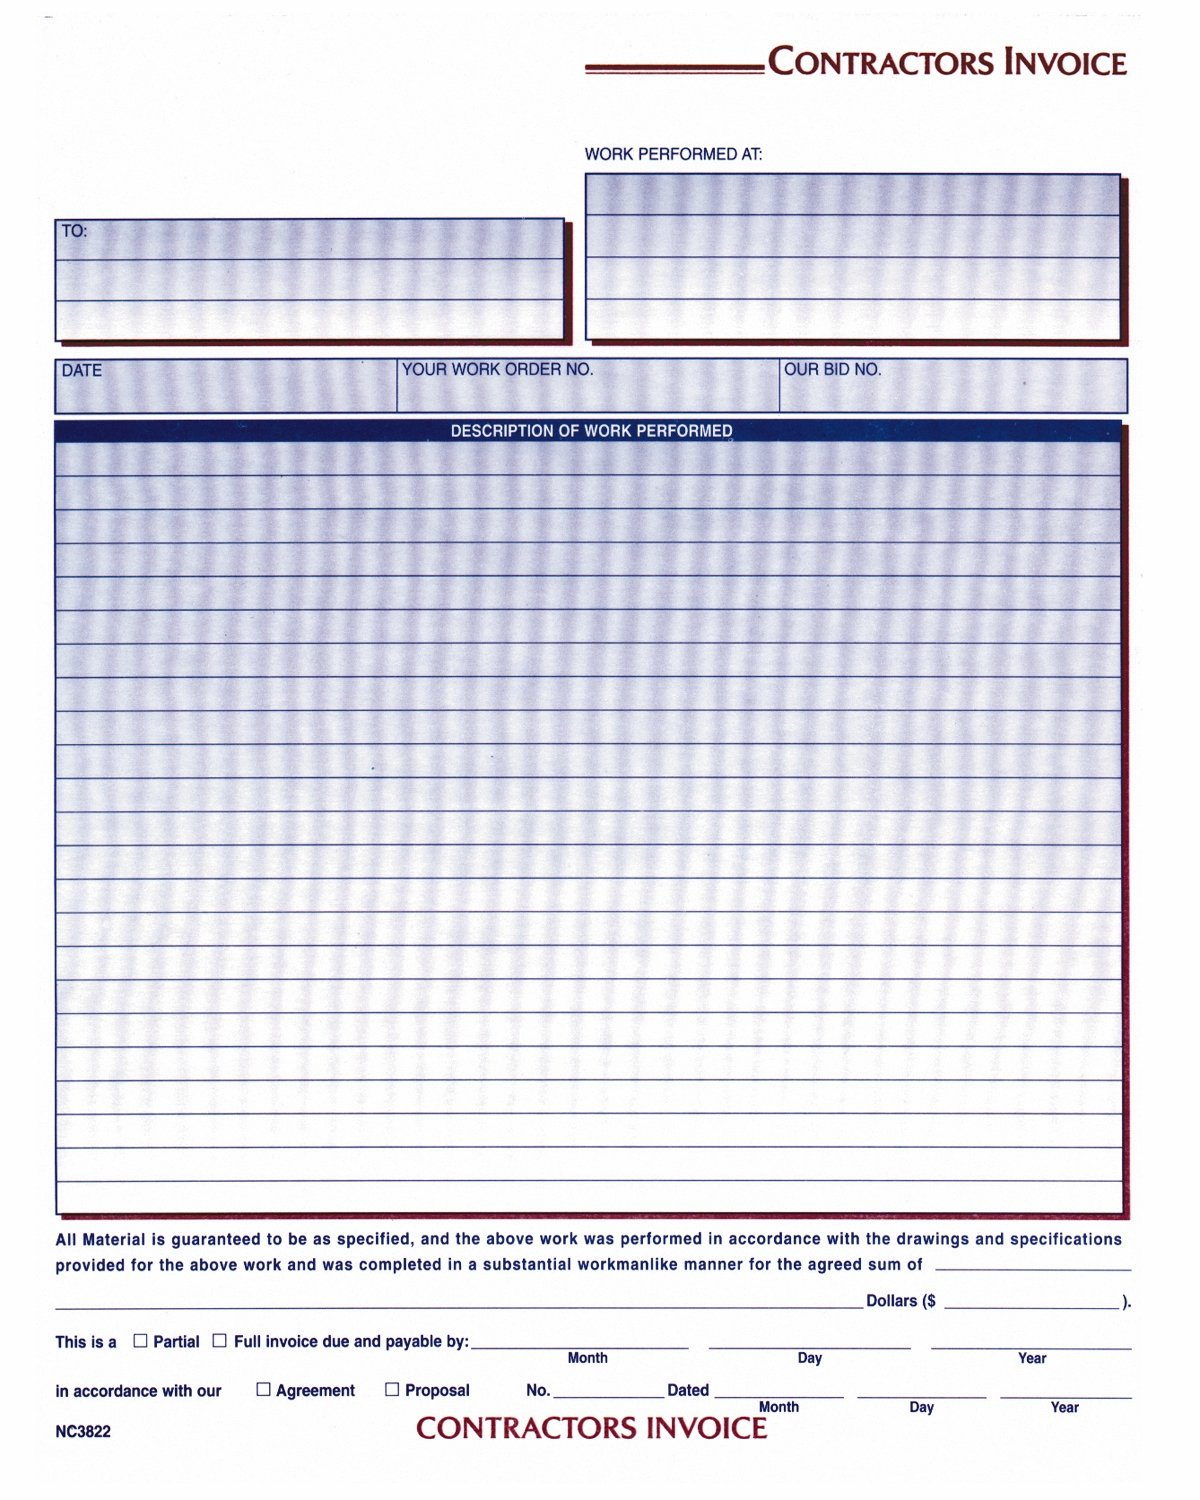 adams contractor invoice forms 8 5 x 11 44 inch 3 part carbonless 100 pac